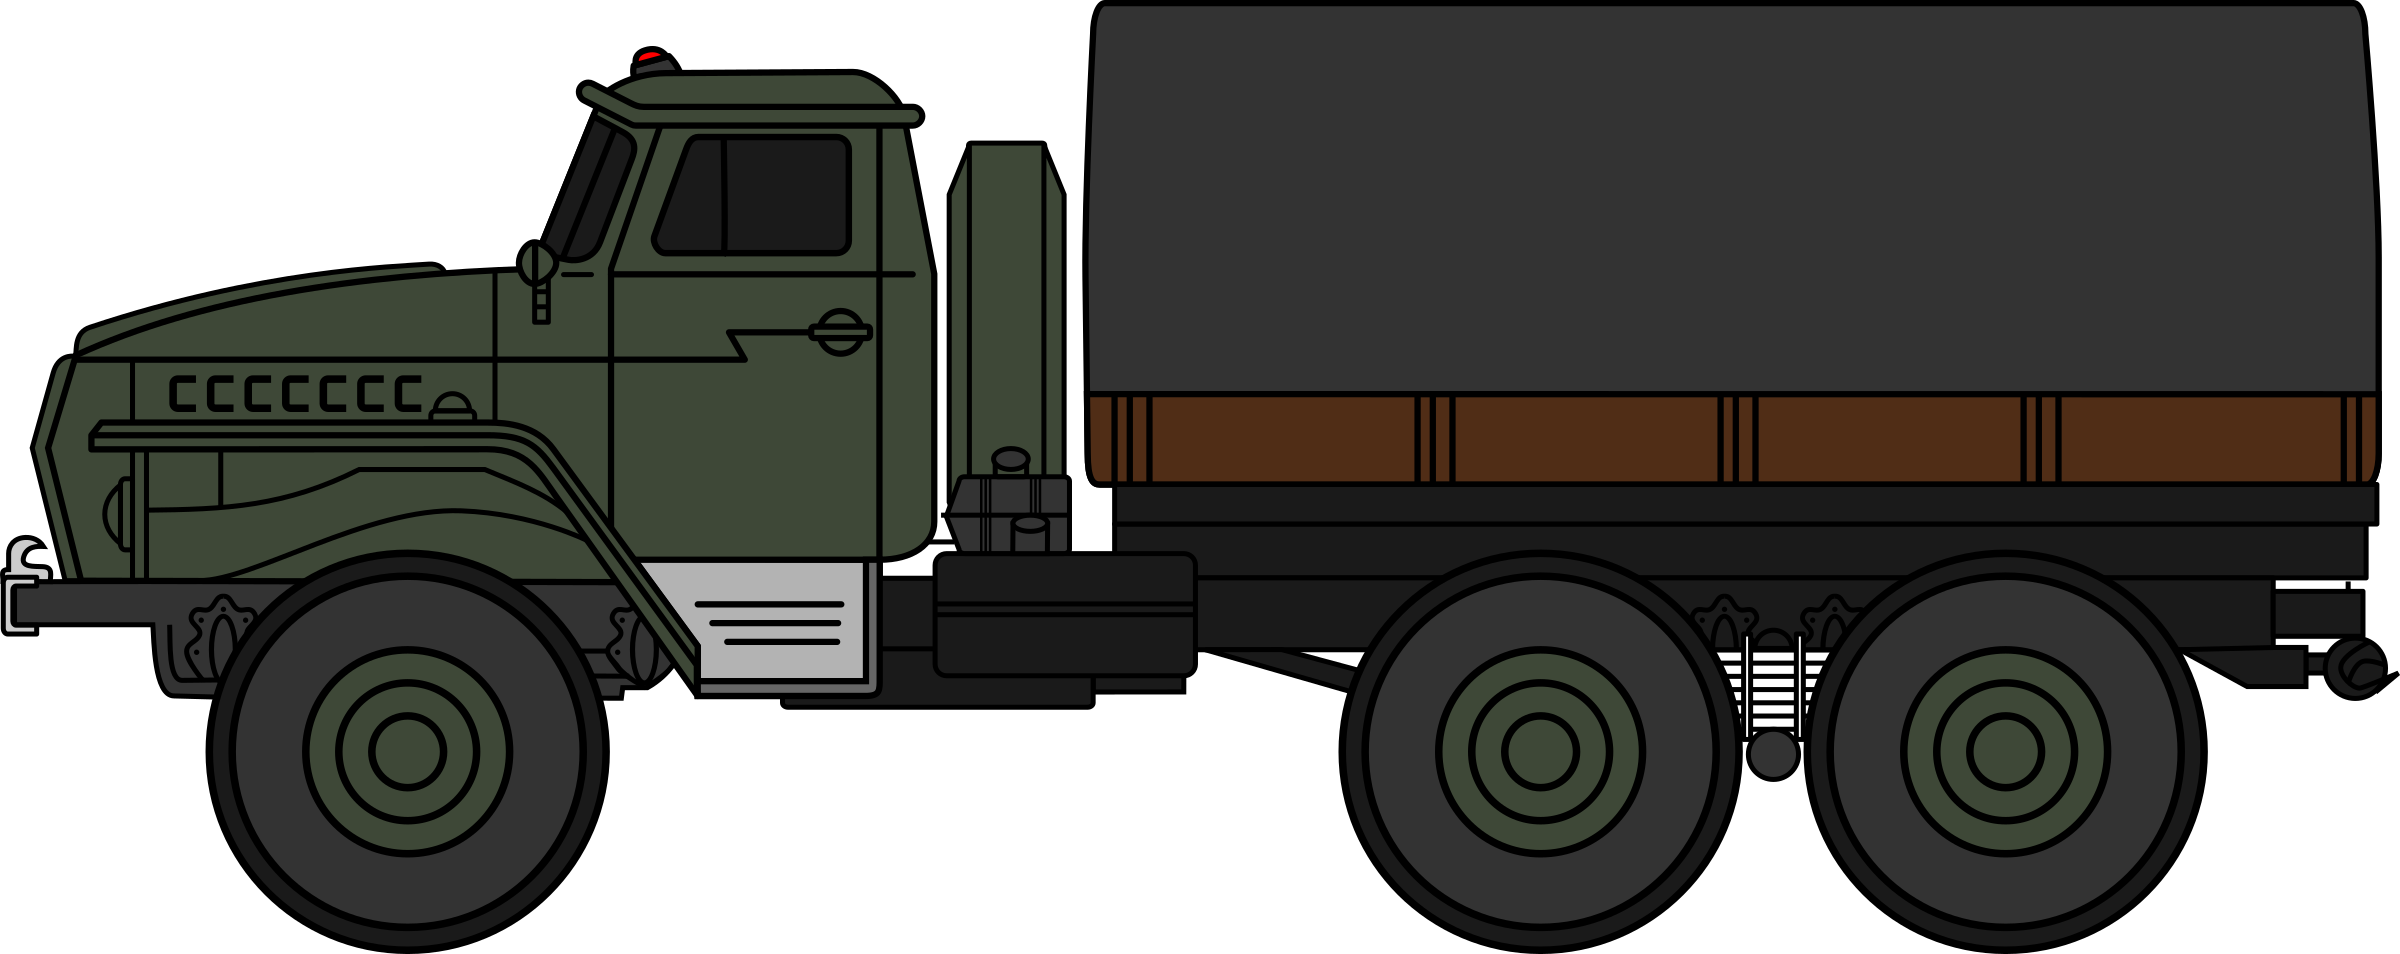 Ural truck coloured big. Military clipart army fighting